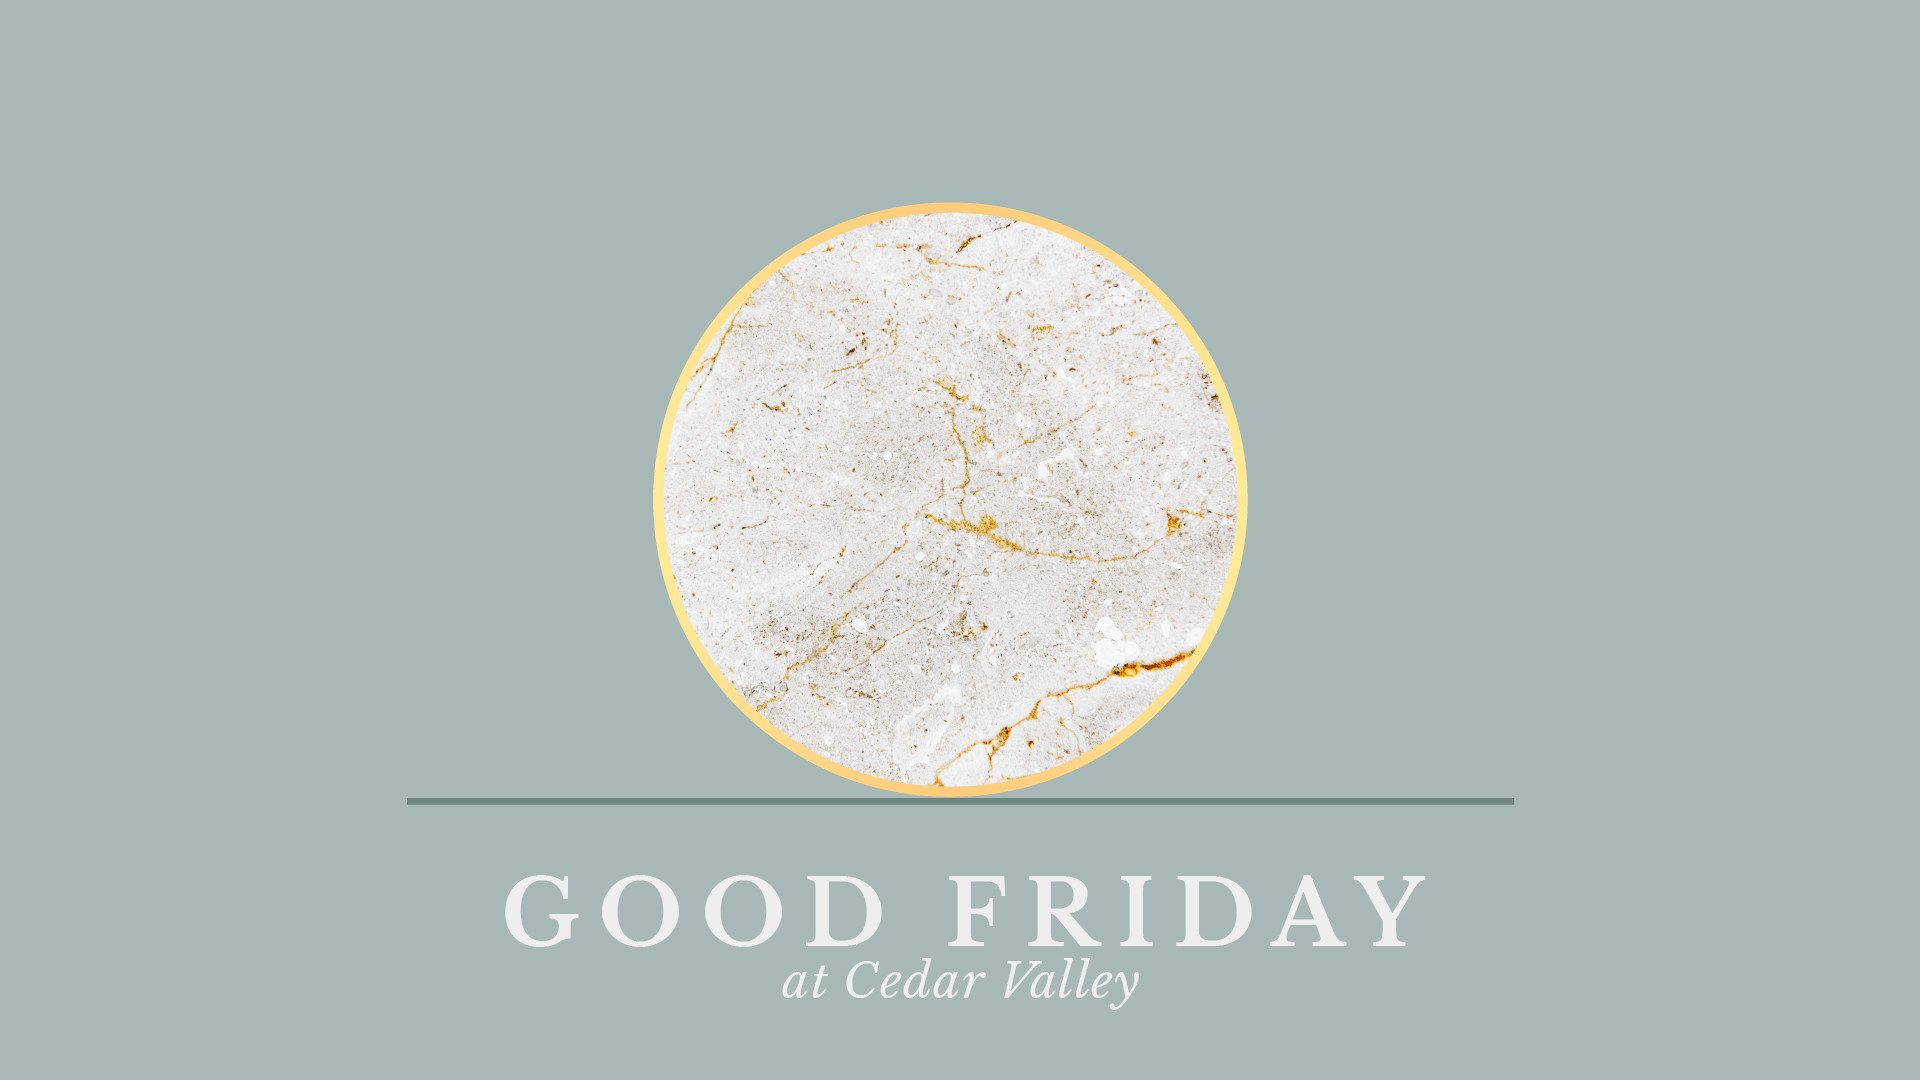 Good Friday at Cedar Valley